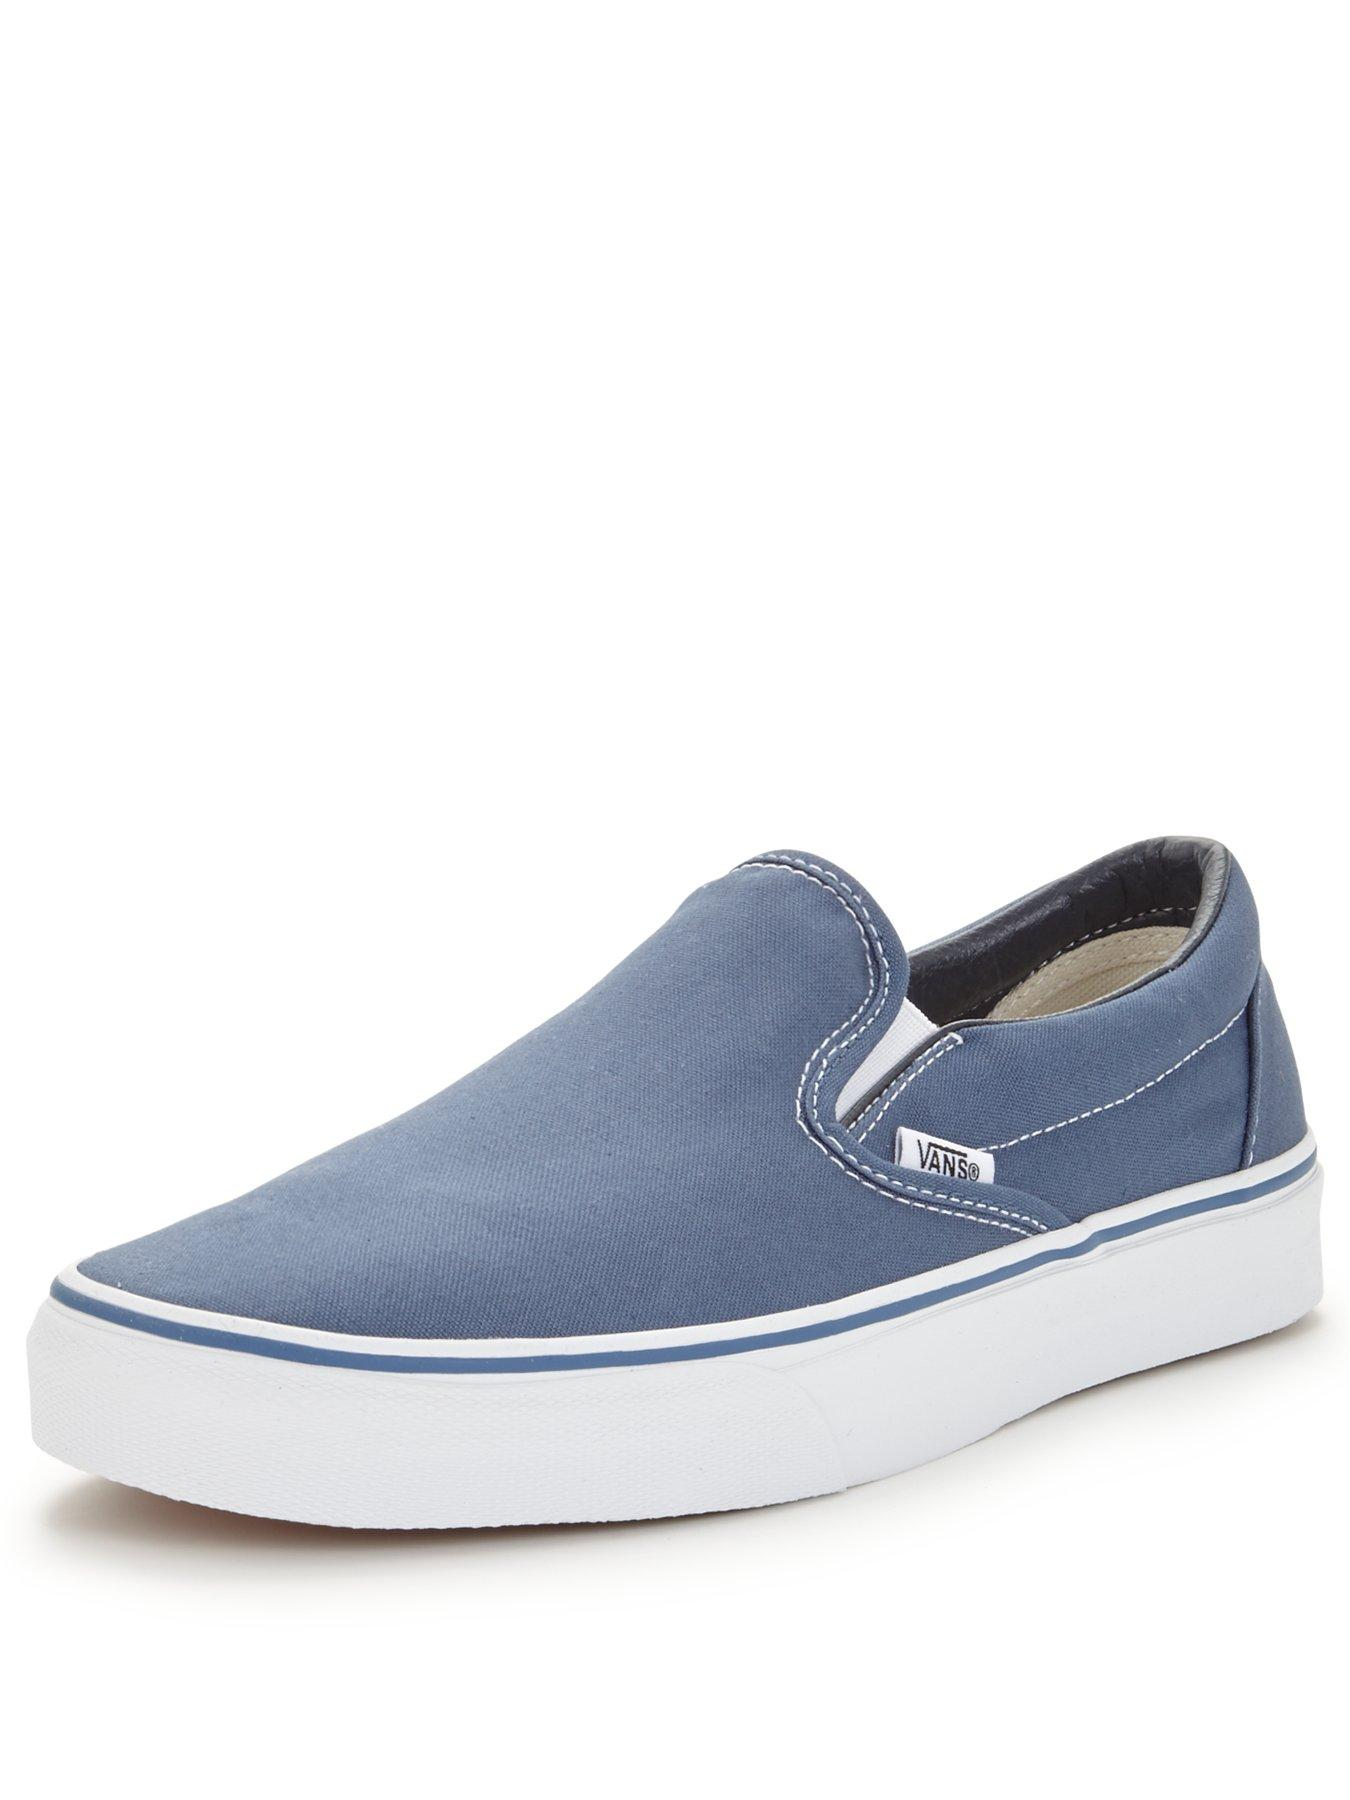 Vans Classic Slip-On Trainers